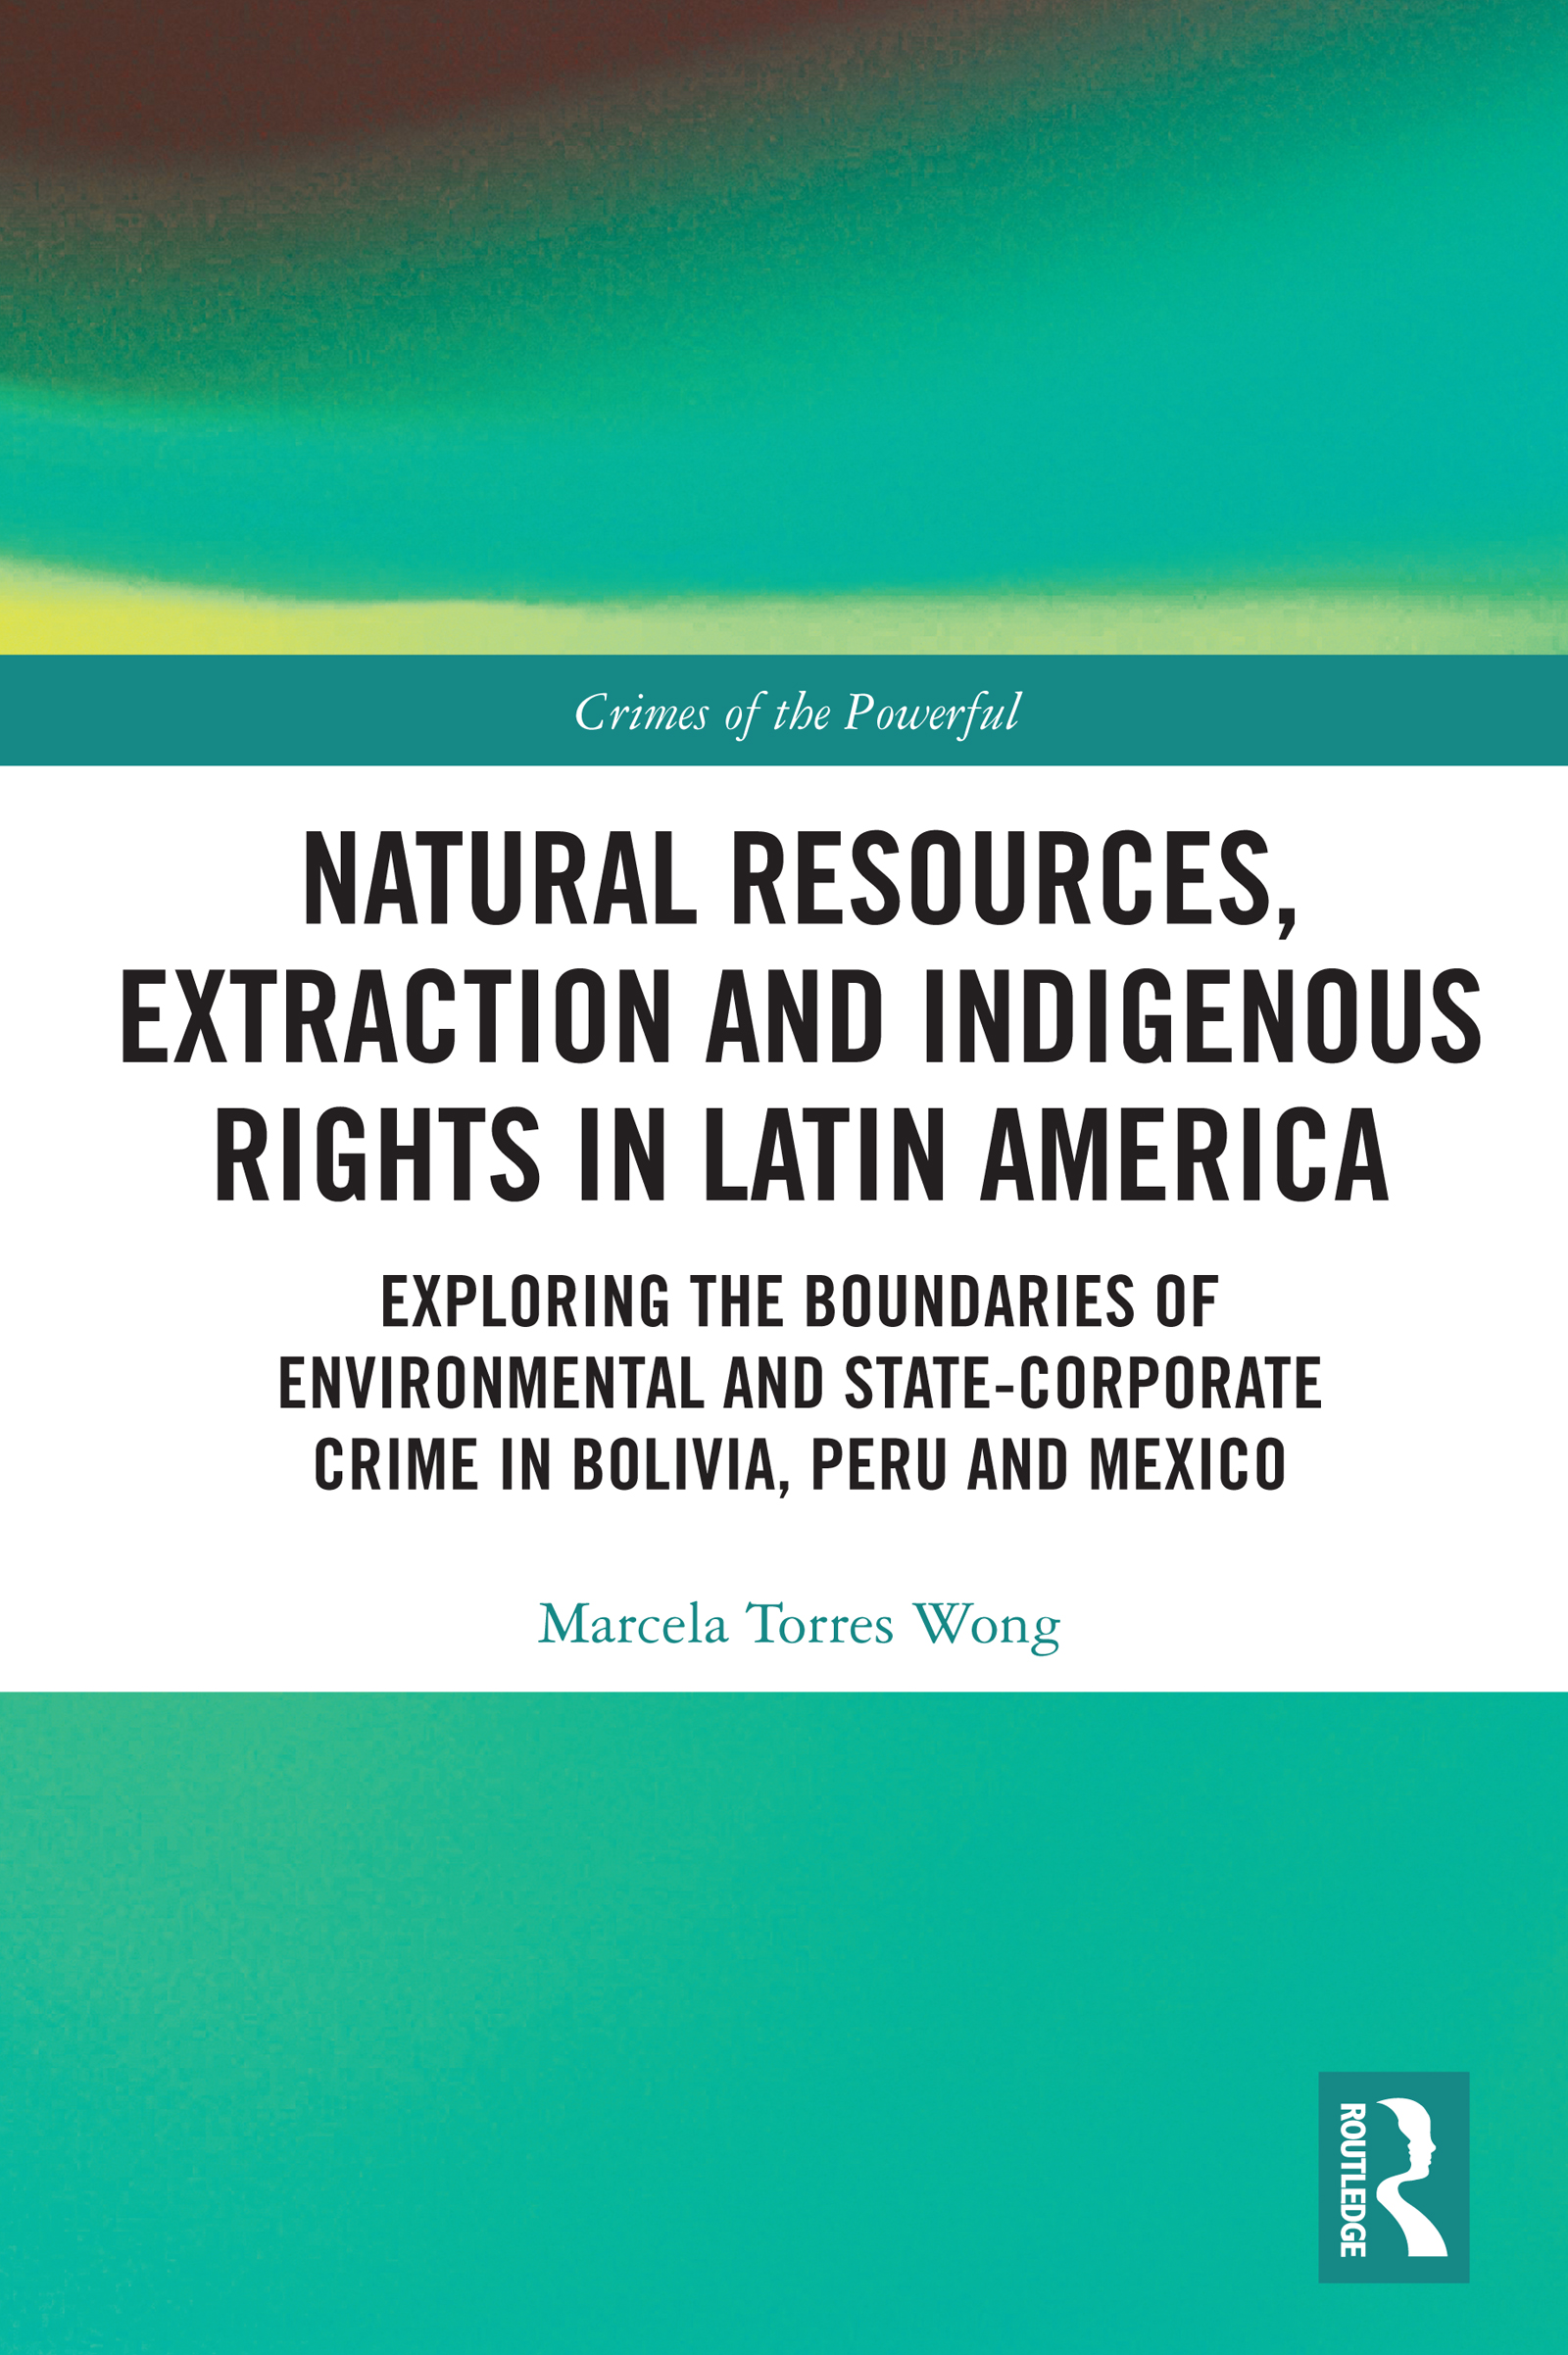 Natural Resources, Extraction and Indigenous Rights in Latin America